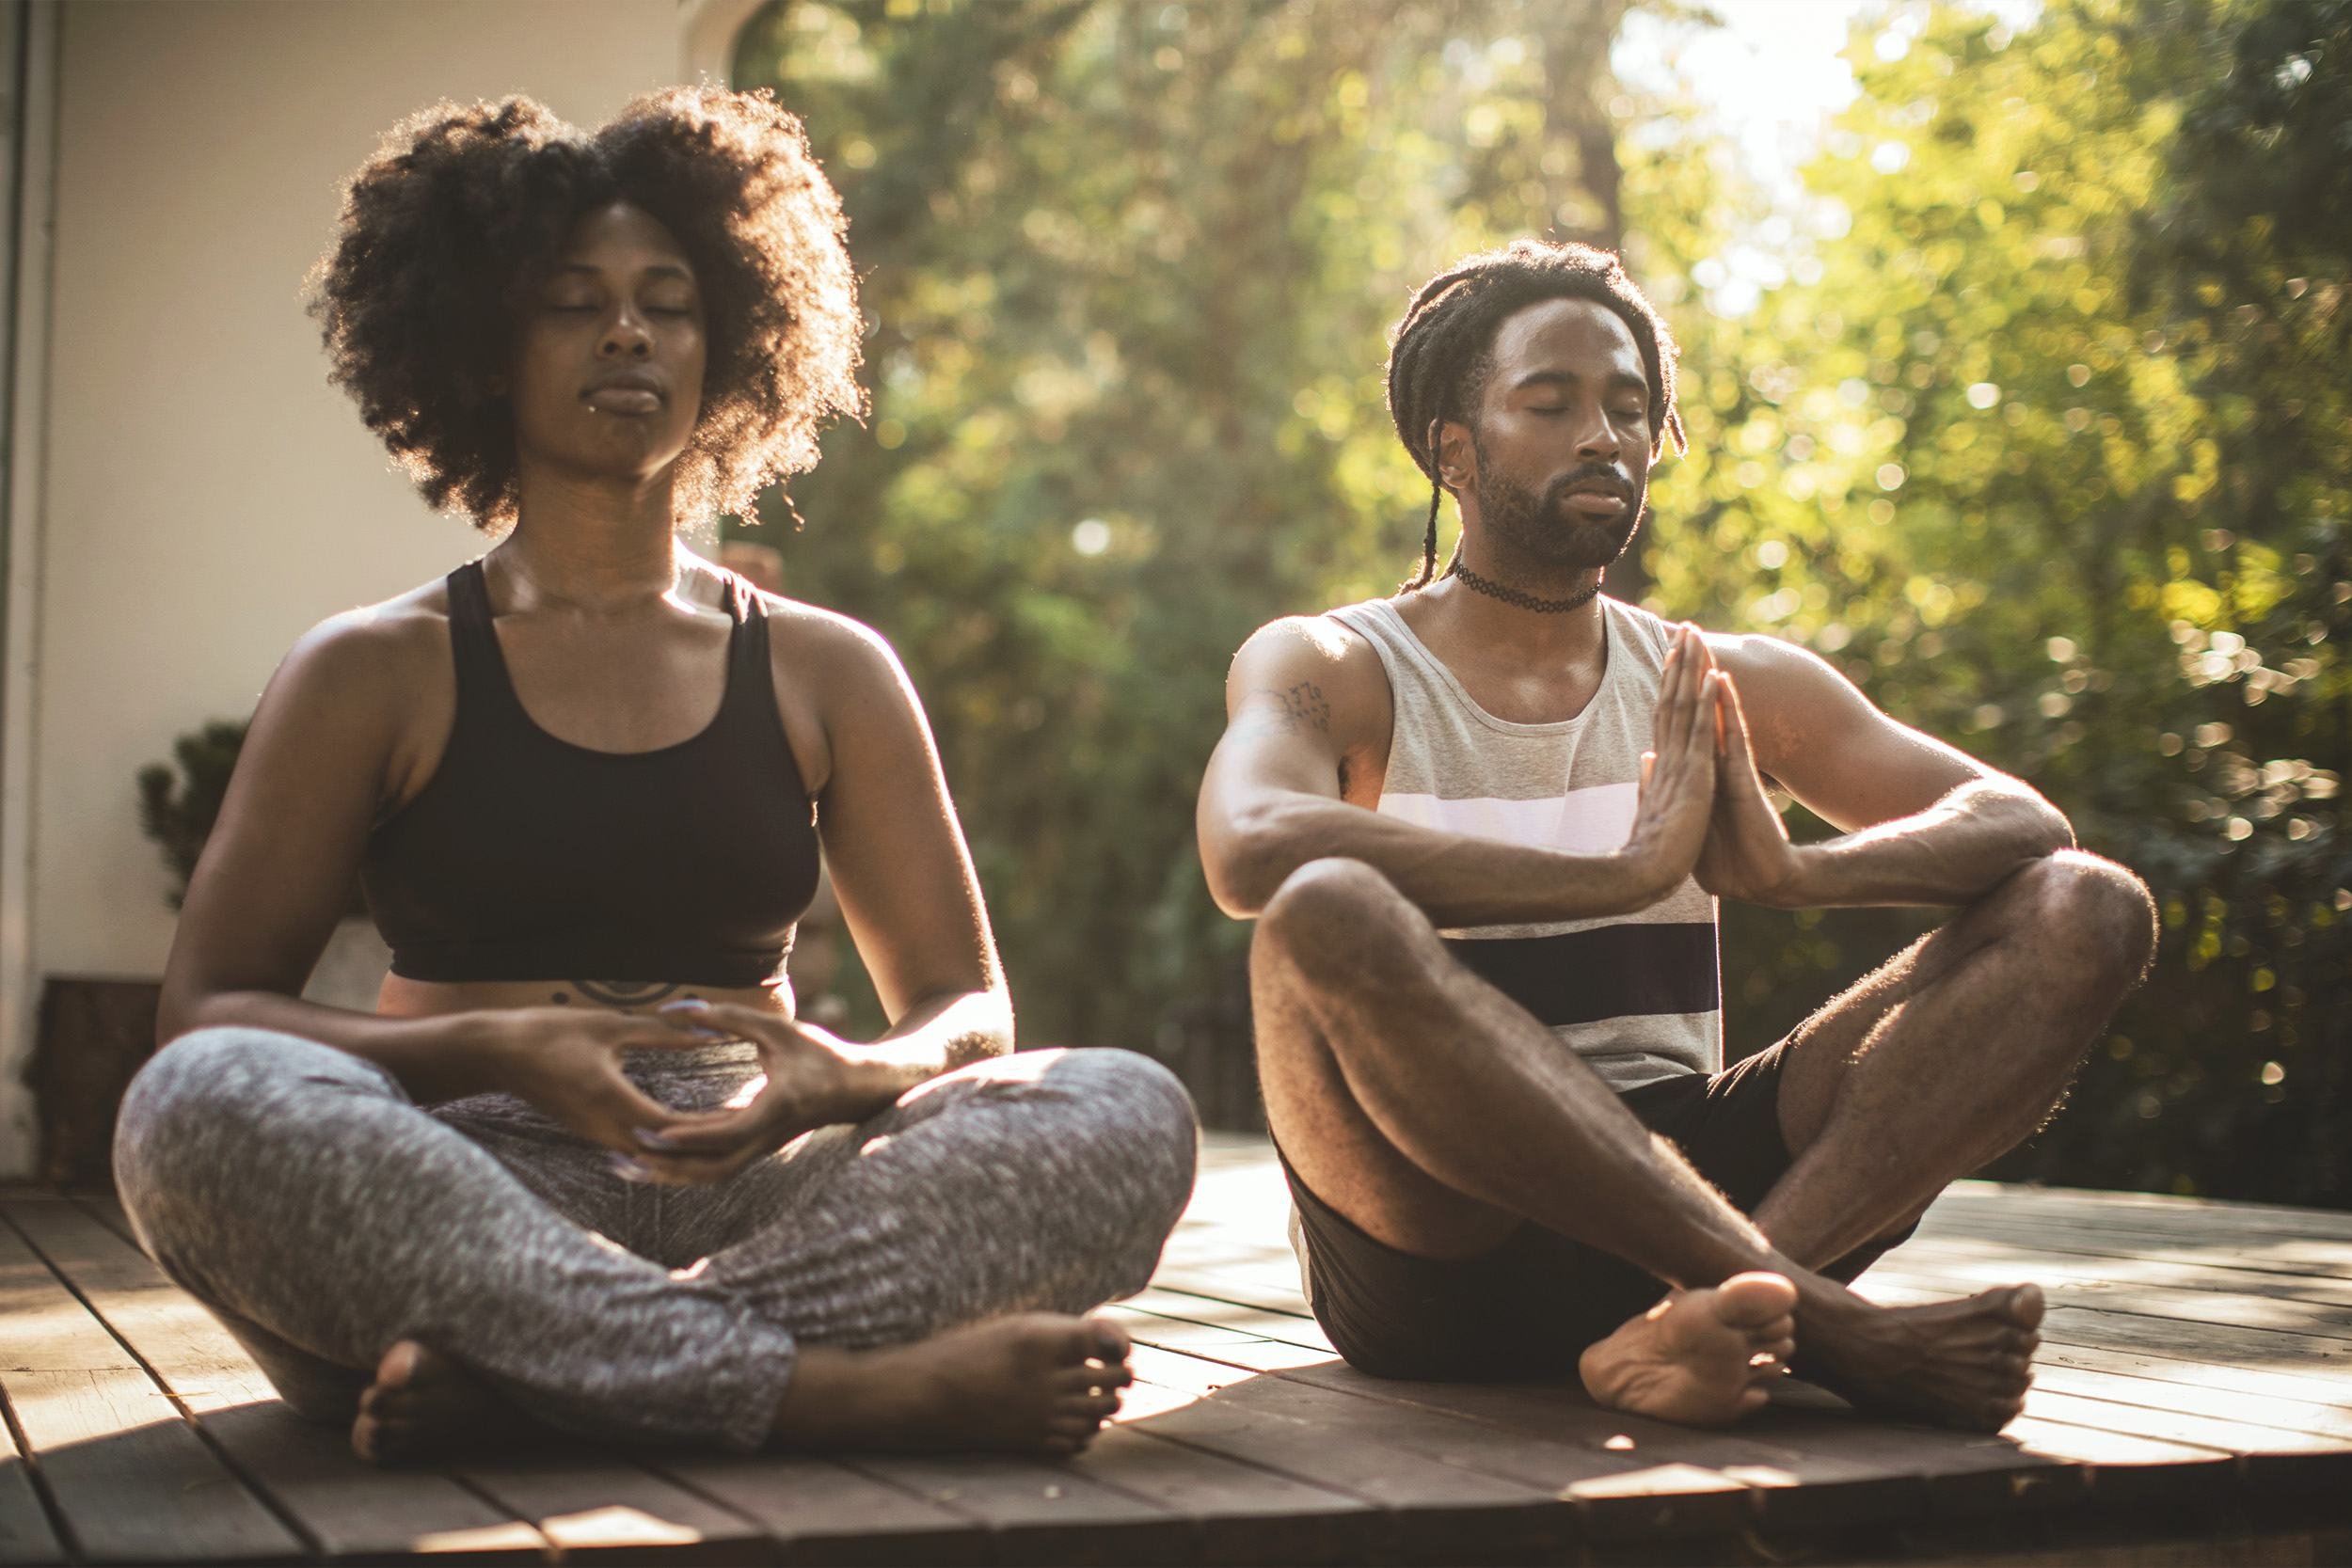 how-to-enhance-intimacy-with-intentional-practices